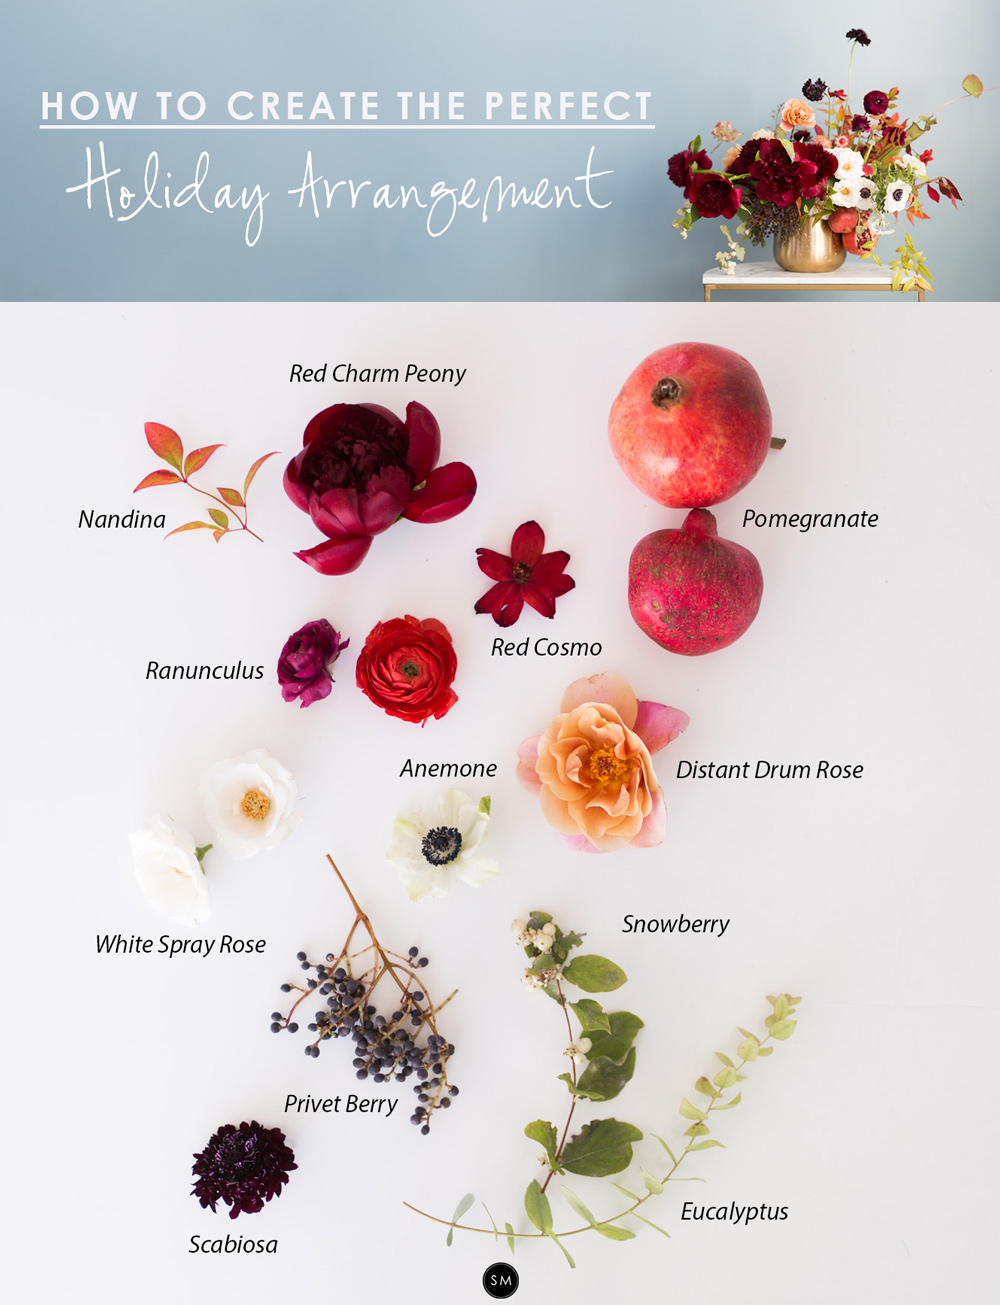 How to create the perfect holiday arrangement